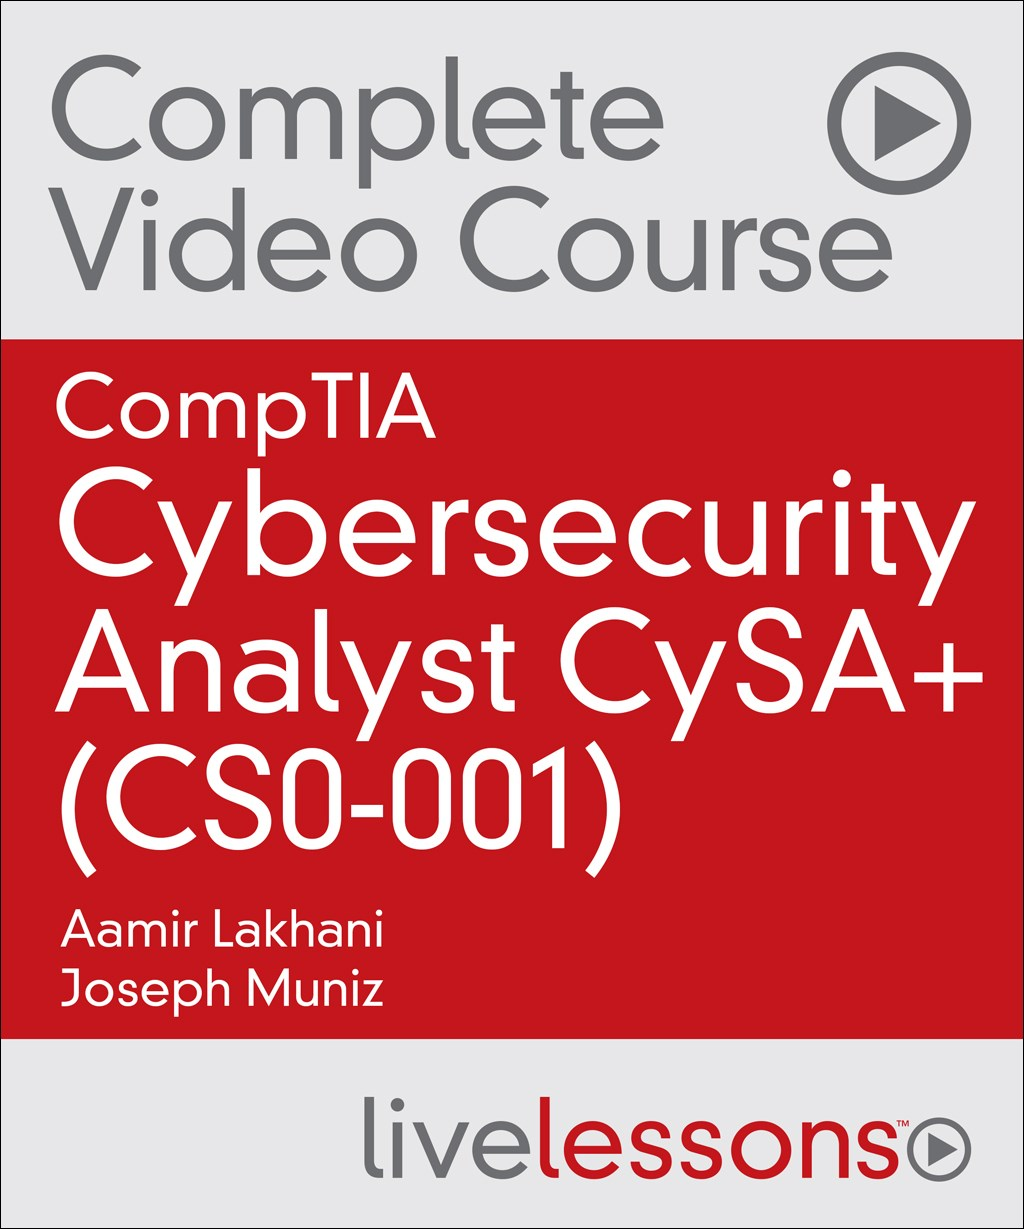 CompTIA Cybersecurity Analyst CSA+ (CS0-001) Premium Edition Complete Video Course